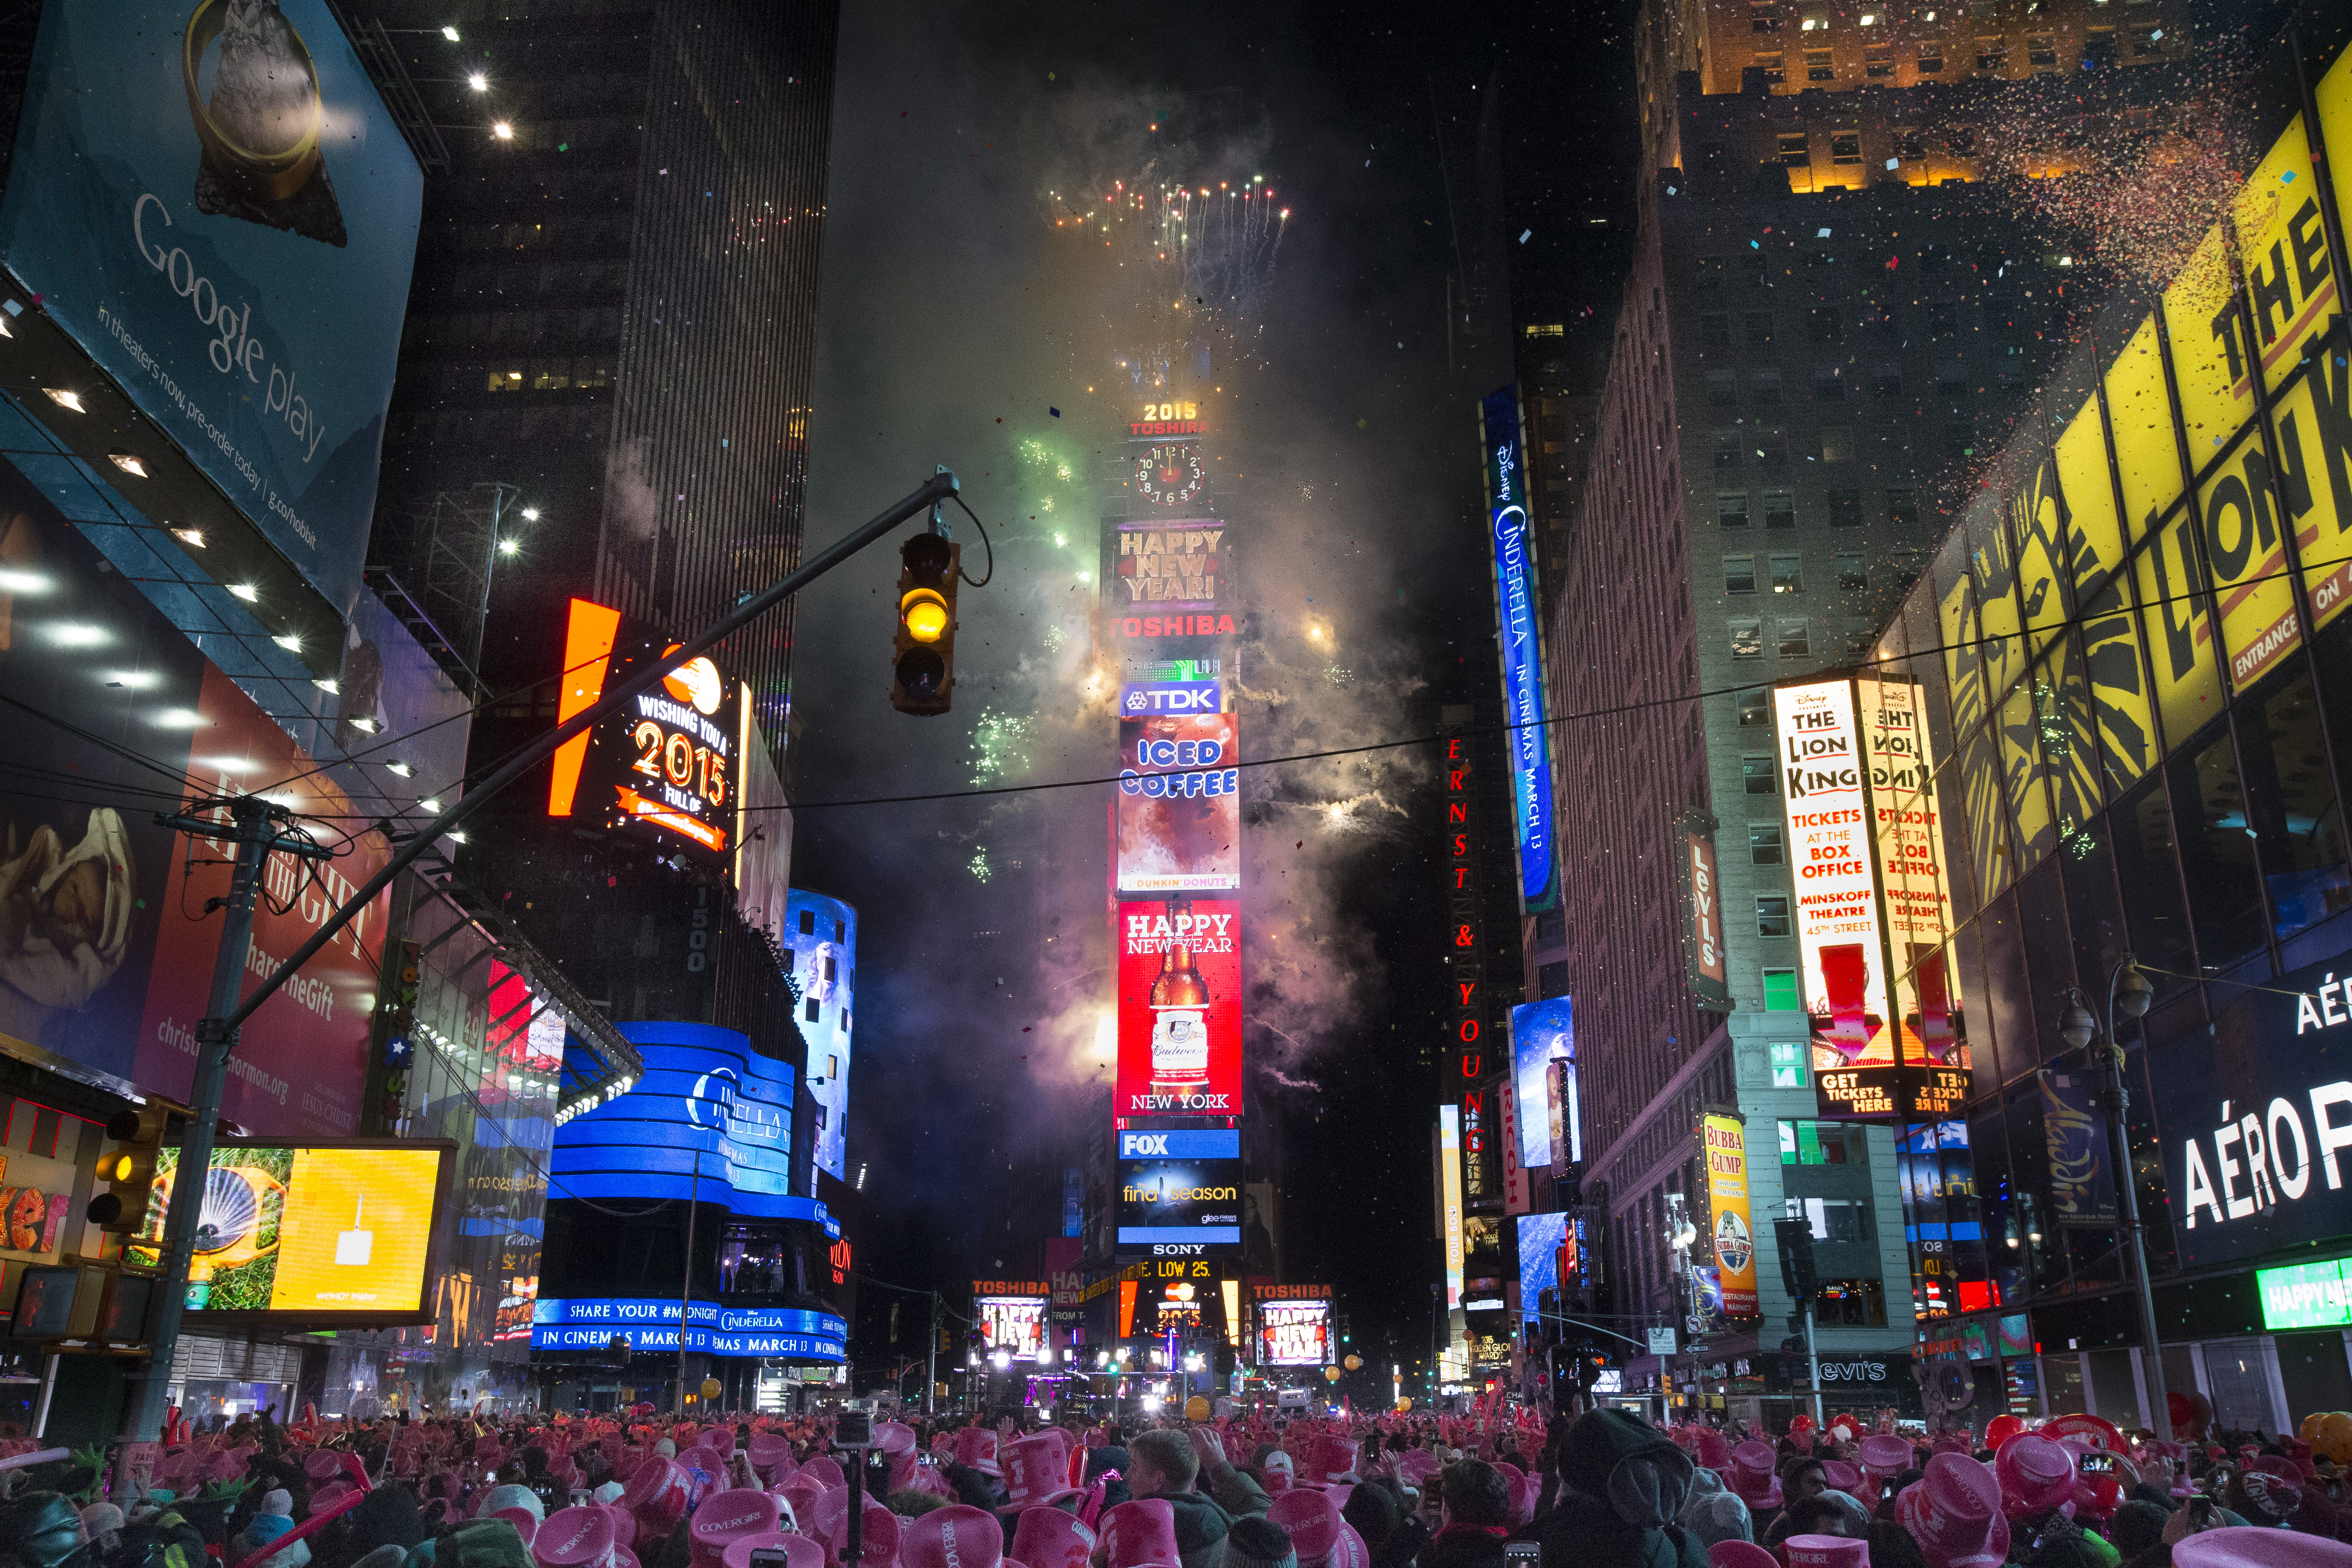 Westlake Legal Group eb2a31bf-AP250356562409_10 NoelYeatts: New Year's resolutions that matter — four ways you can change the world Noel Yeatts fox-news/us/crime/sex-crimes fox-news/opinion fox-news/faith-values fox news fnc/opinion fnc c34e004f-19c6-5a28-9a2f-2bc1d60a4e29 article